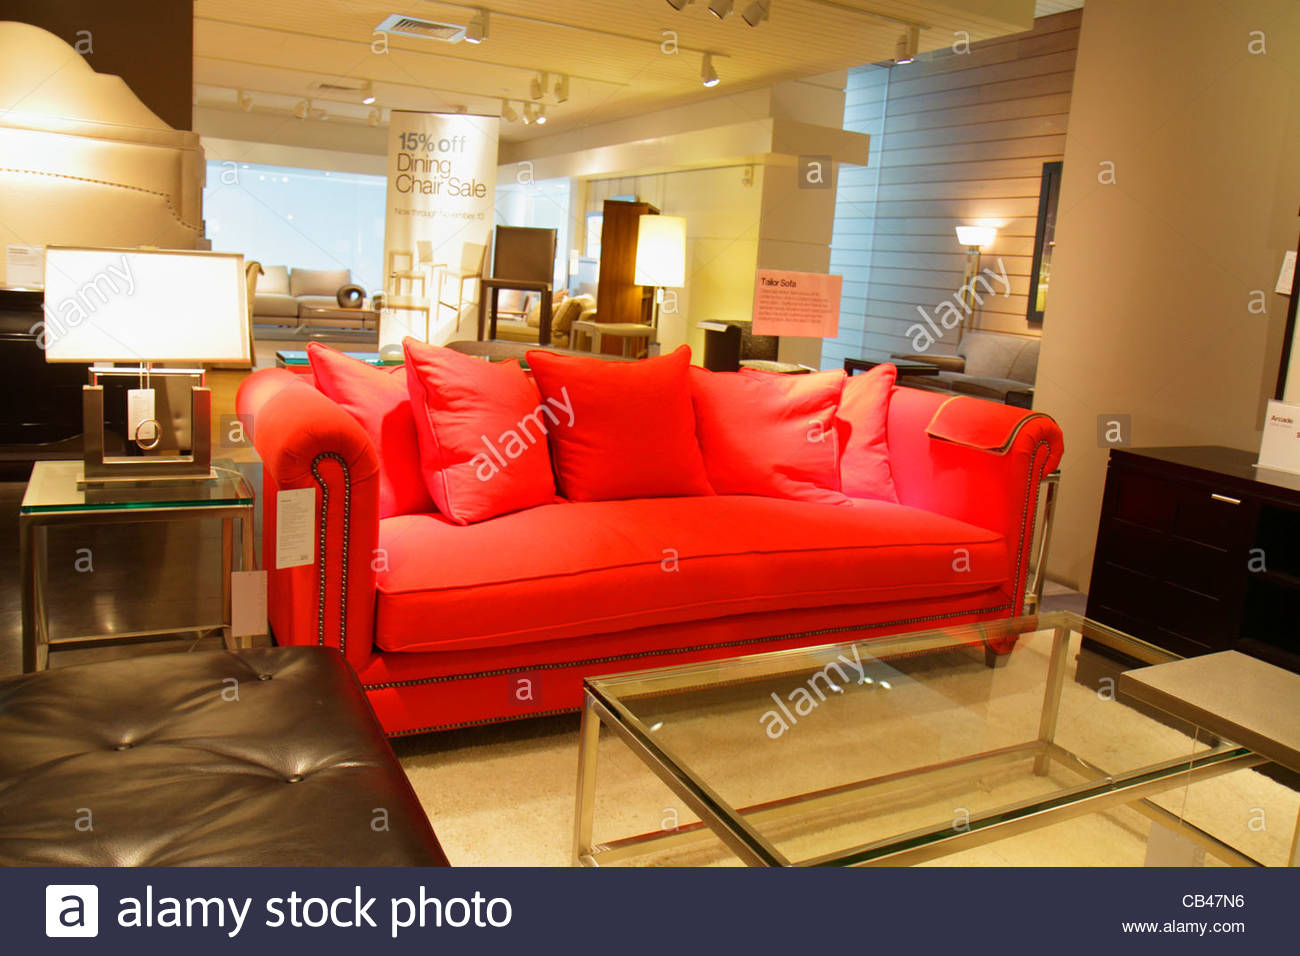 Red Sofa In Store Stockfotos & Red Sofa In Store Bilder - Alamy